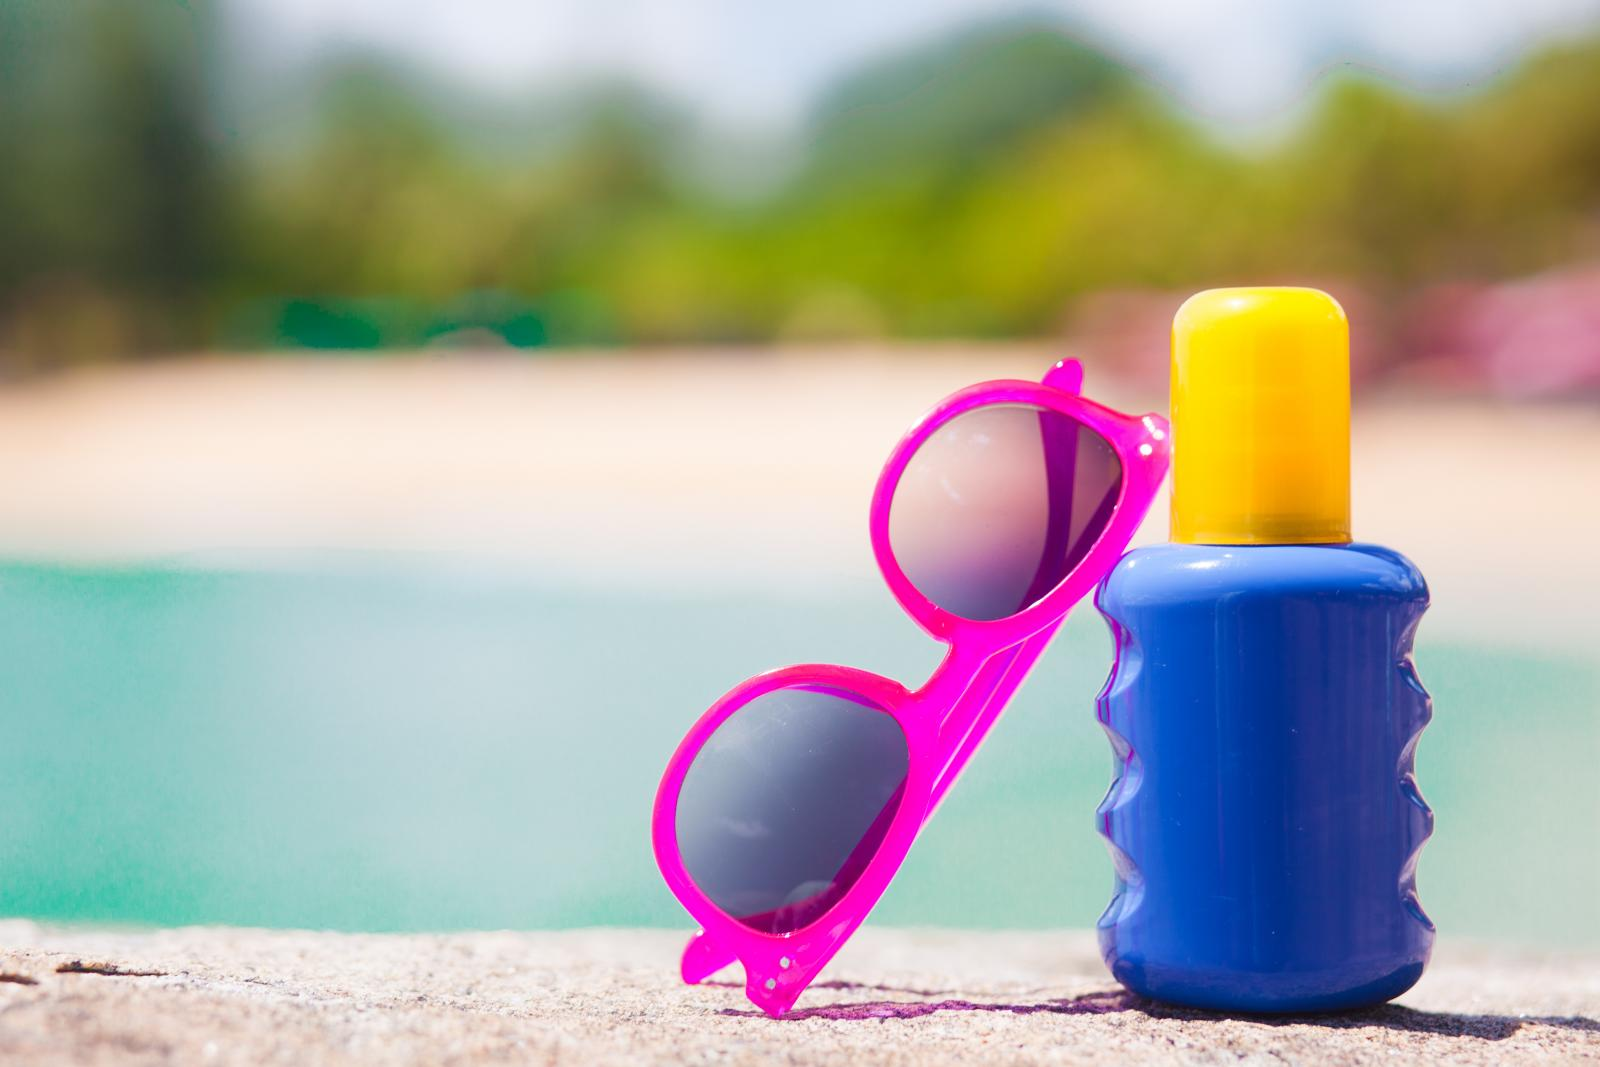 91% of Brits don't pack enough sunscreen when holidaying abroad